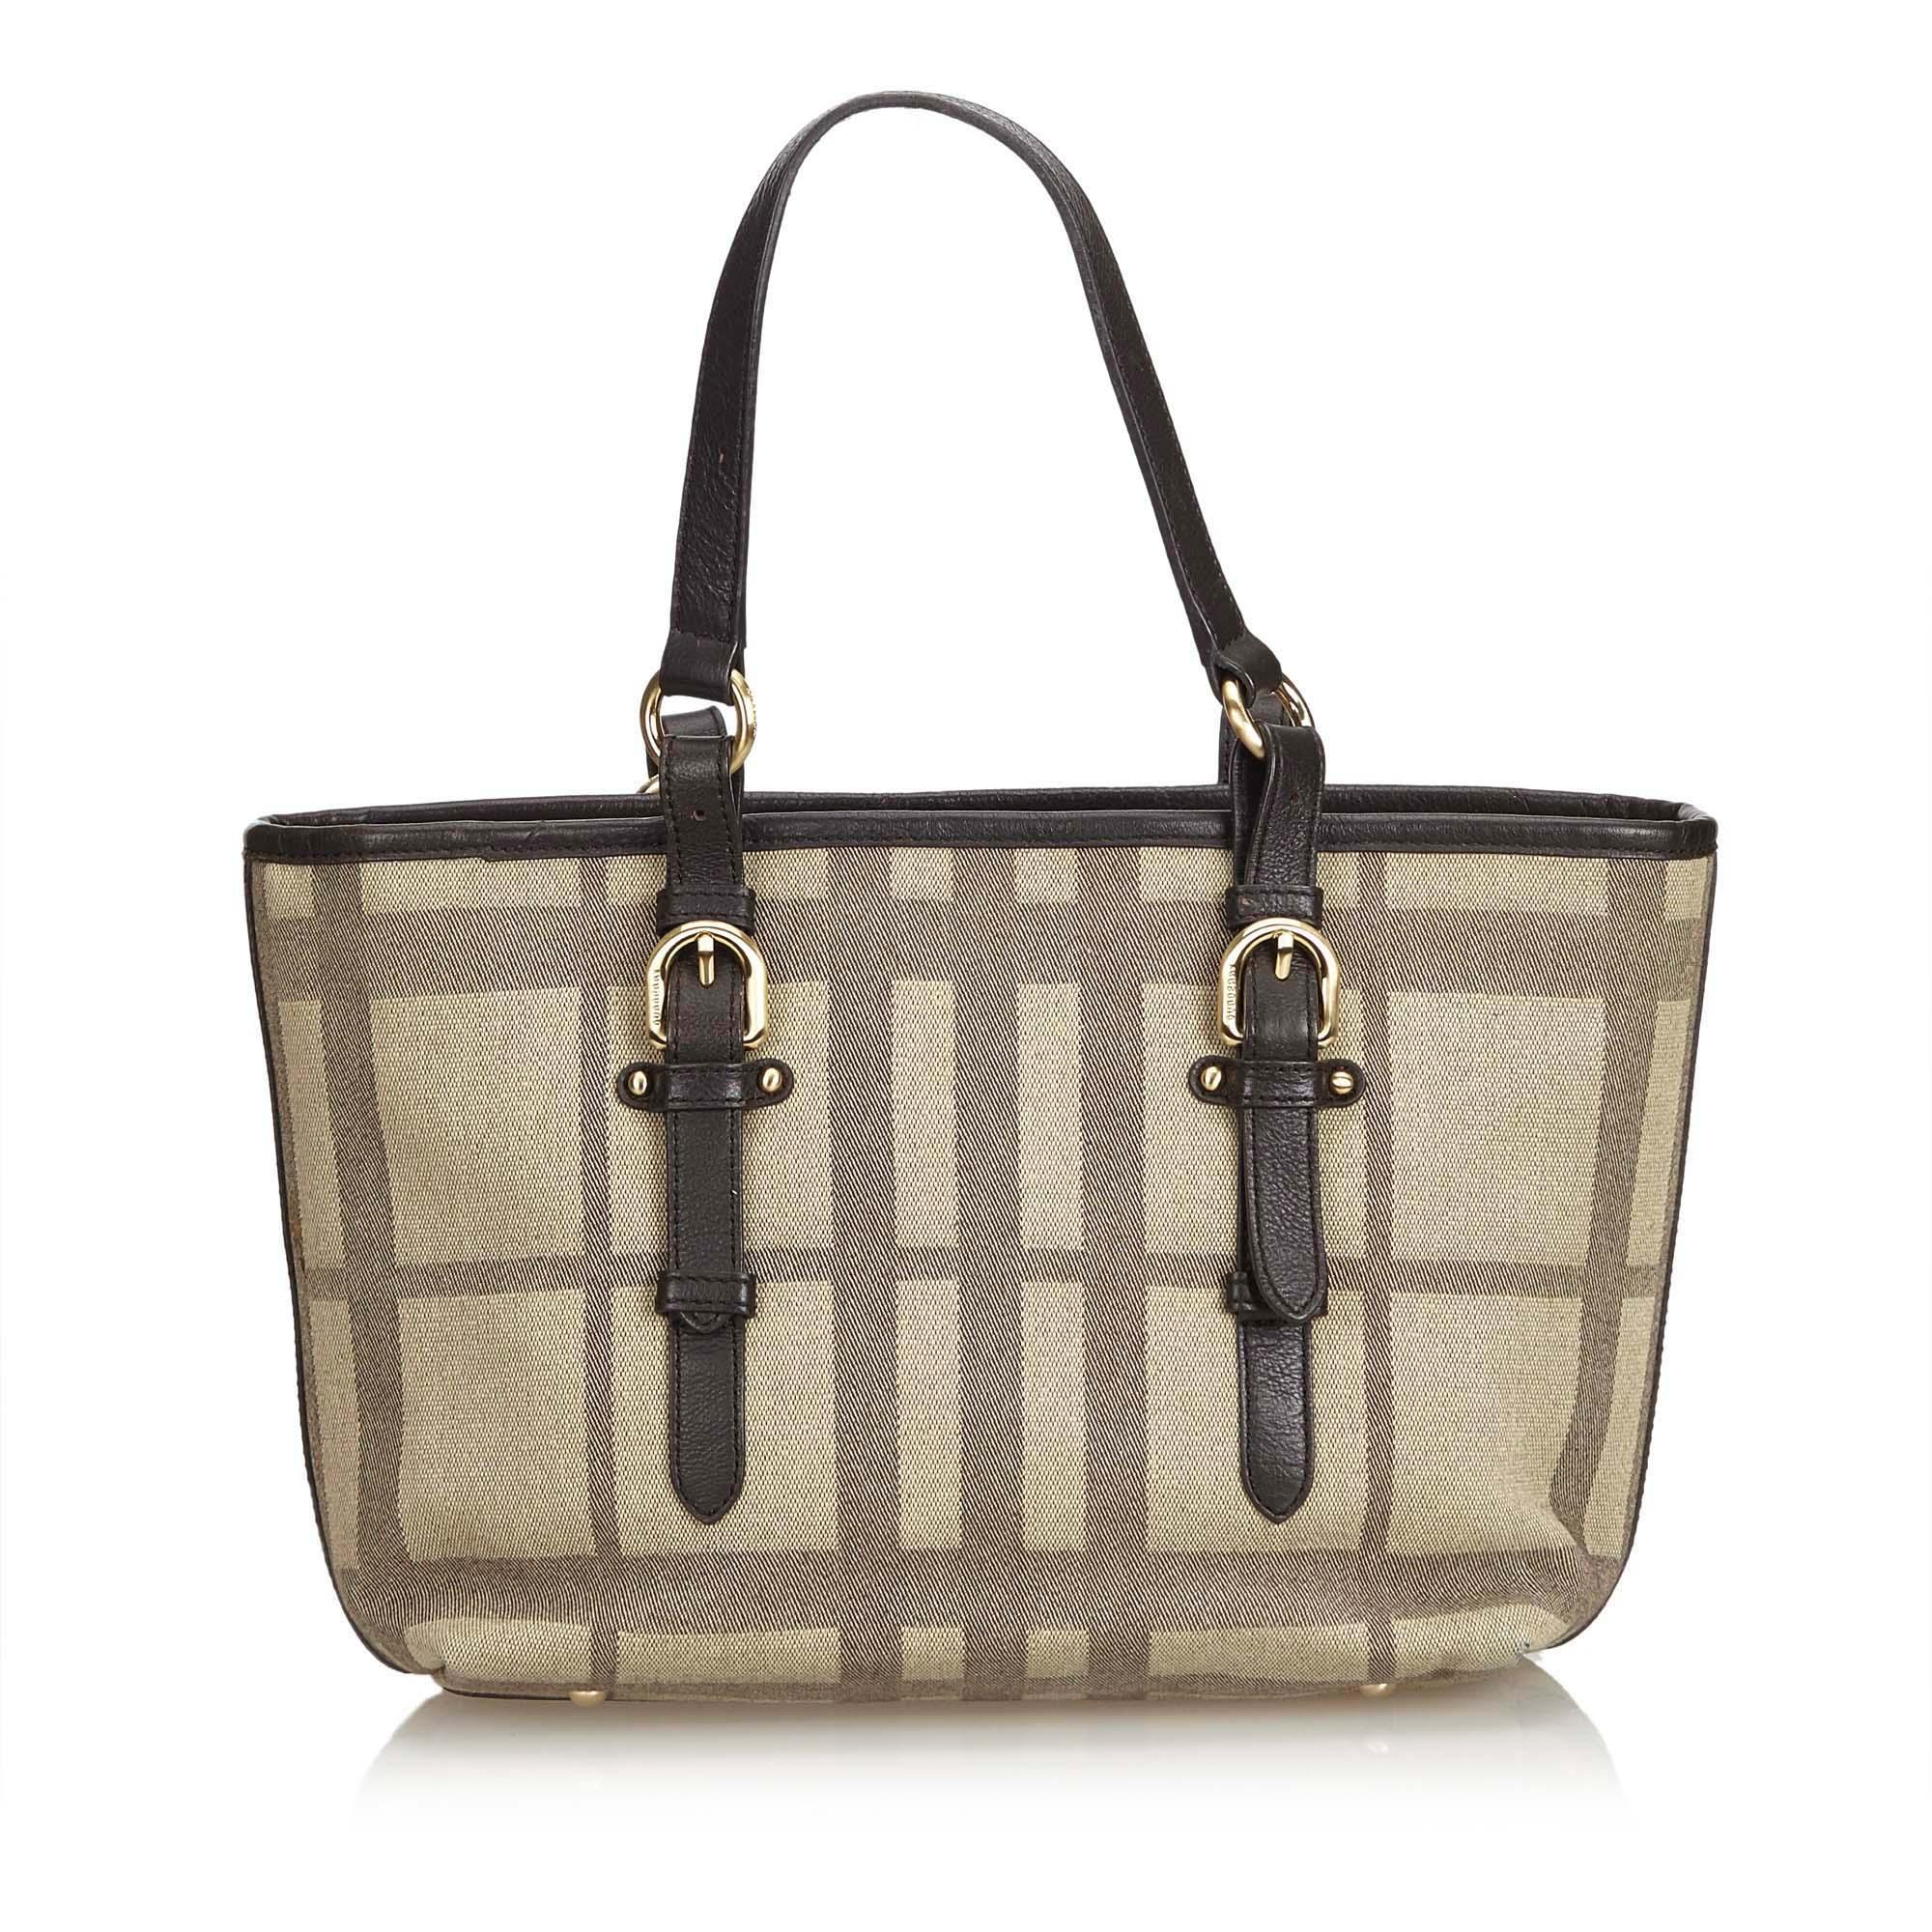 16903d977 Burberry Brown Plaid Canvas Tote Bag in Brown - Lyst